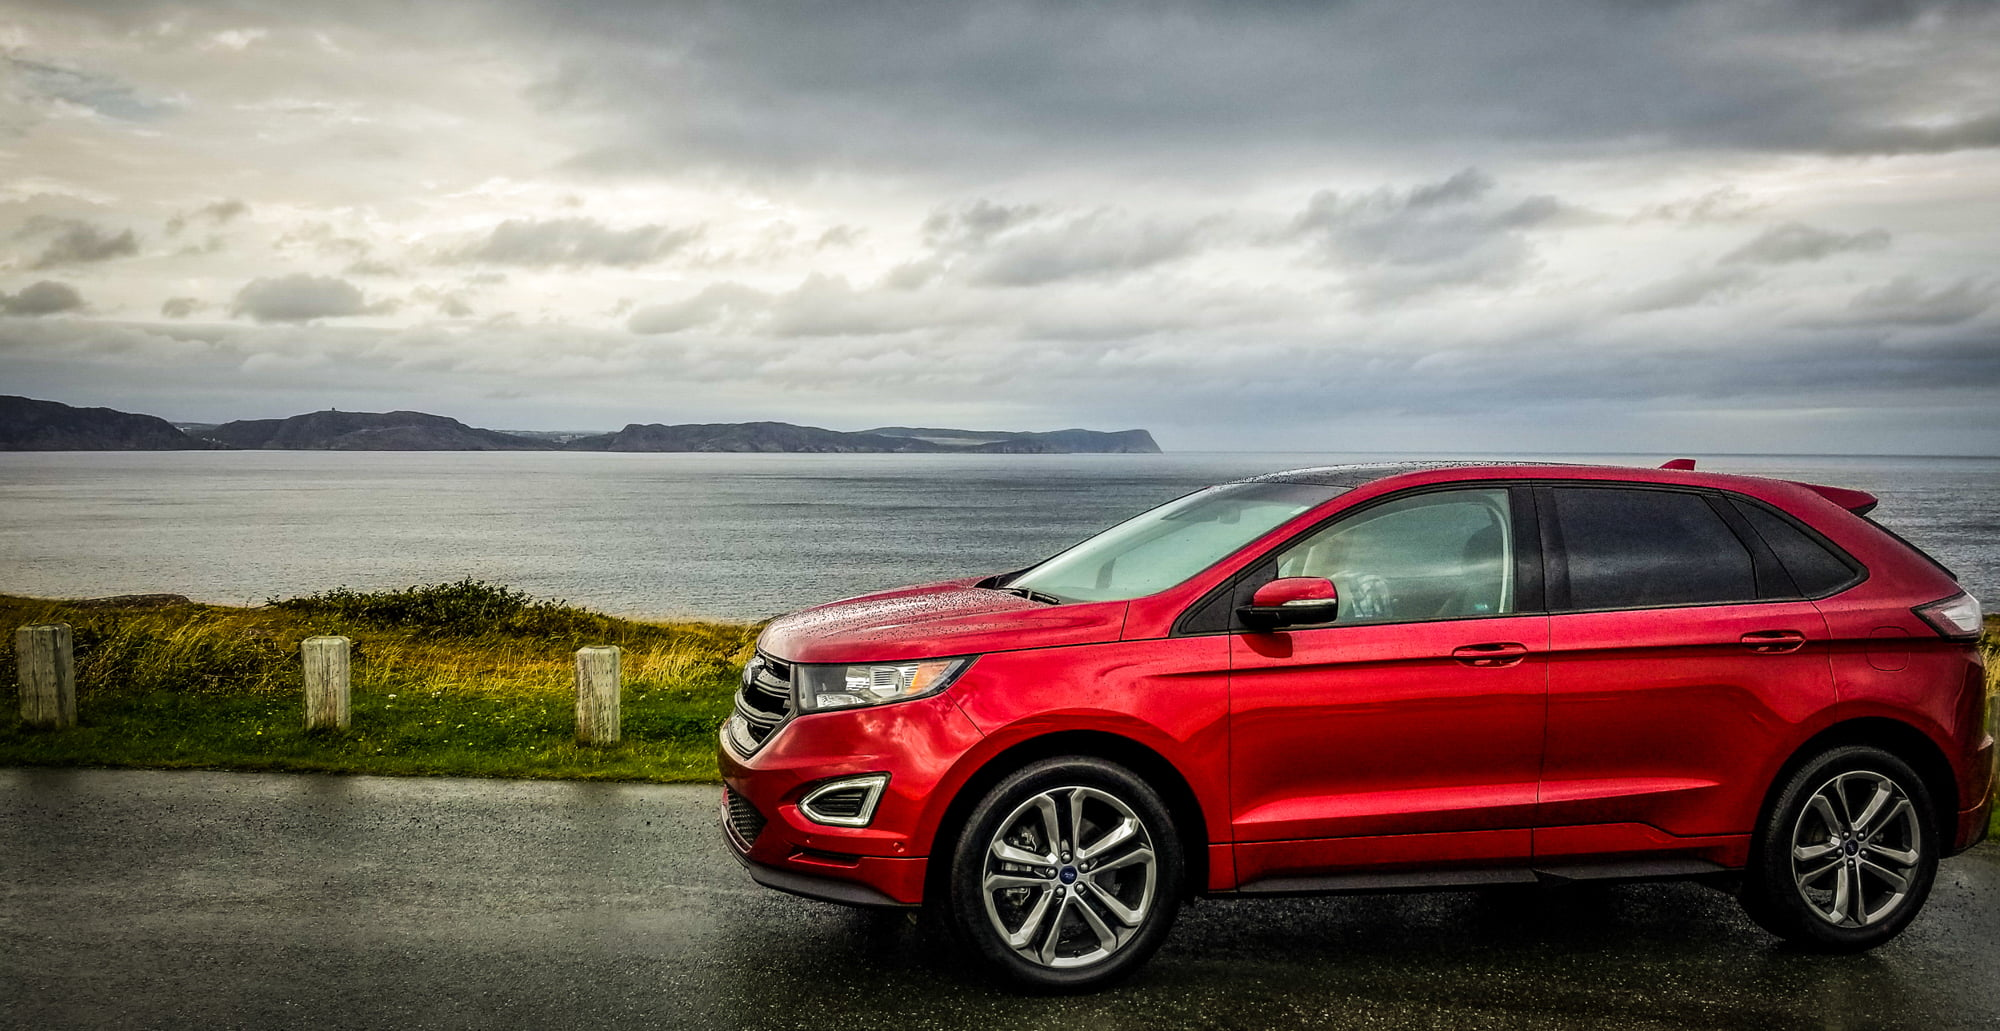 Ford Edge at Cape Spear